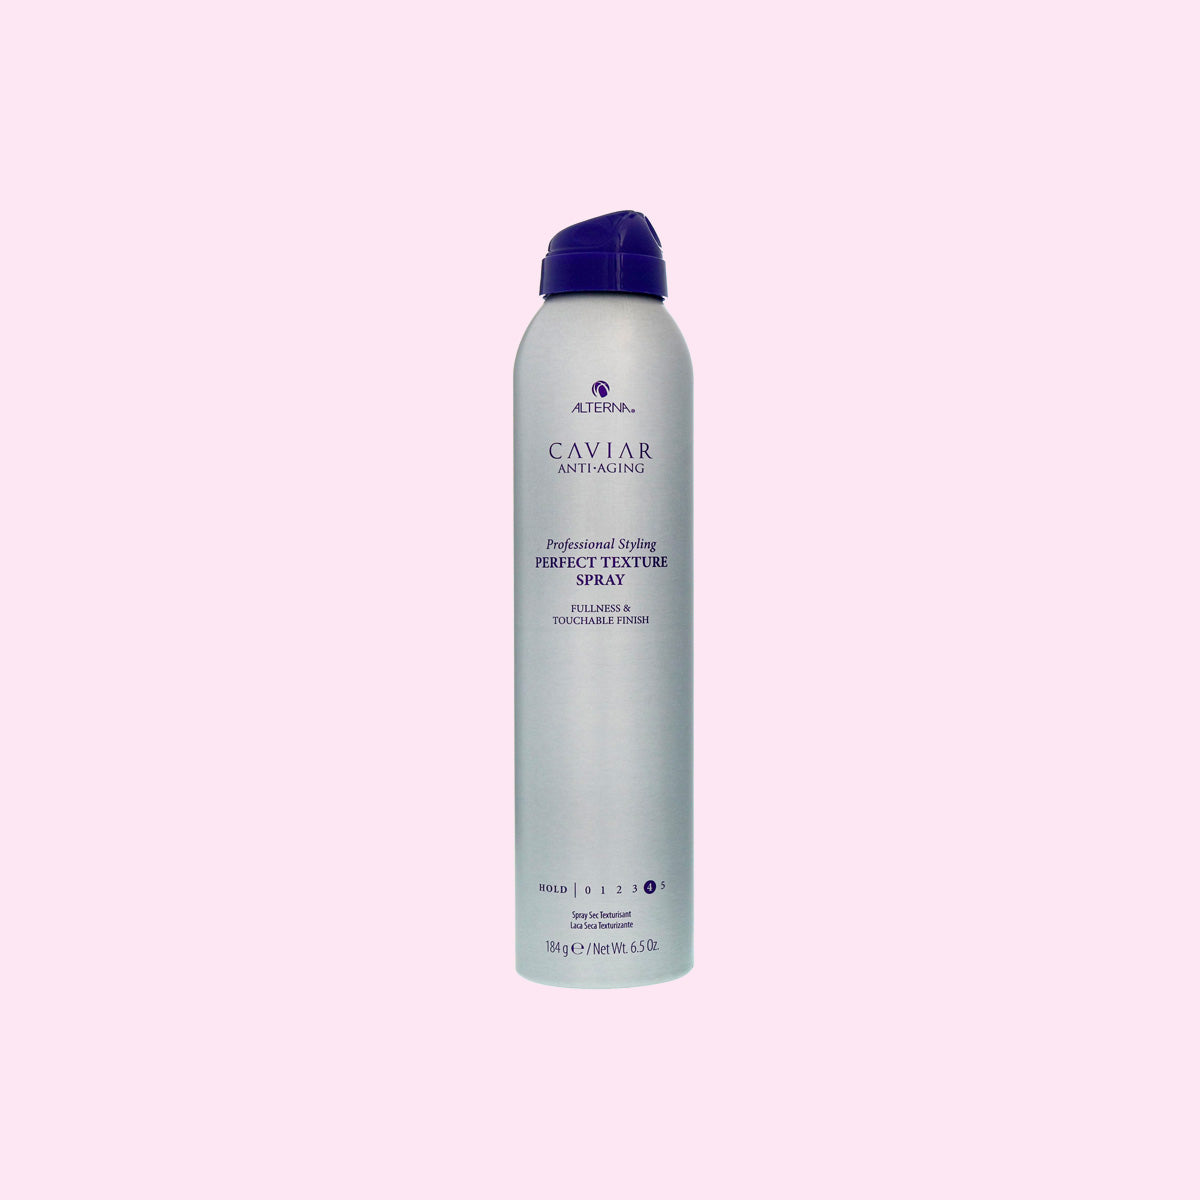 Alterna Caviar Professional Styling Perfect Texture Spray 184g